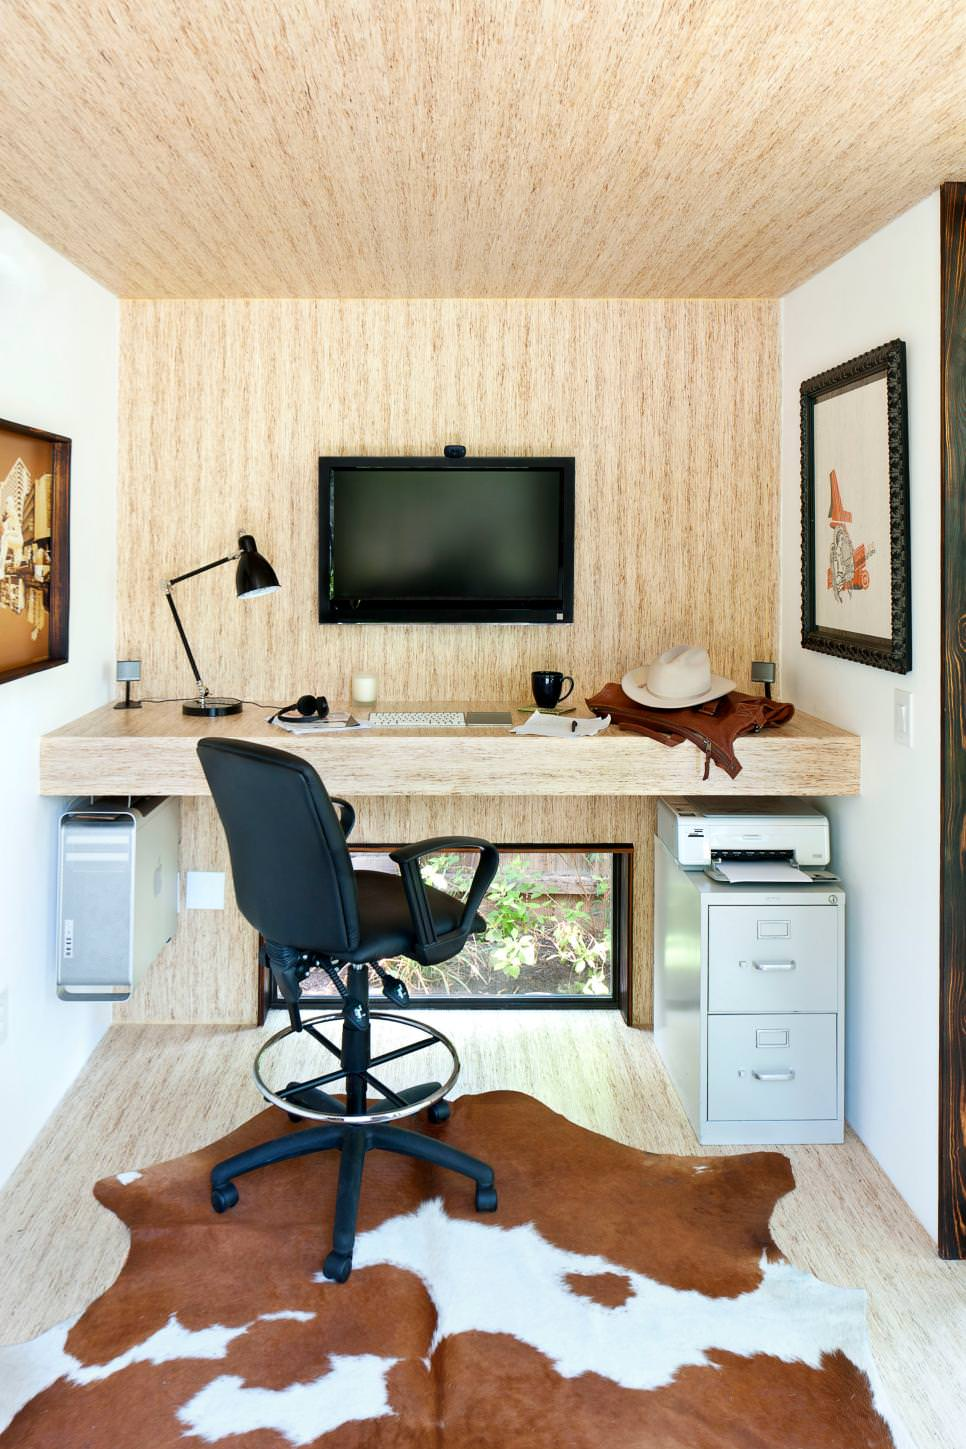 Home Office Rooms: 23+ Attic Home Office Designs, Decorating Ideas